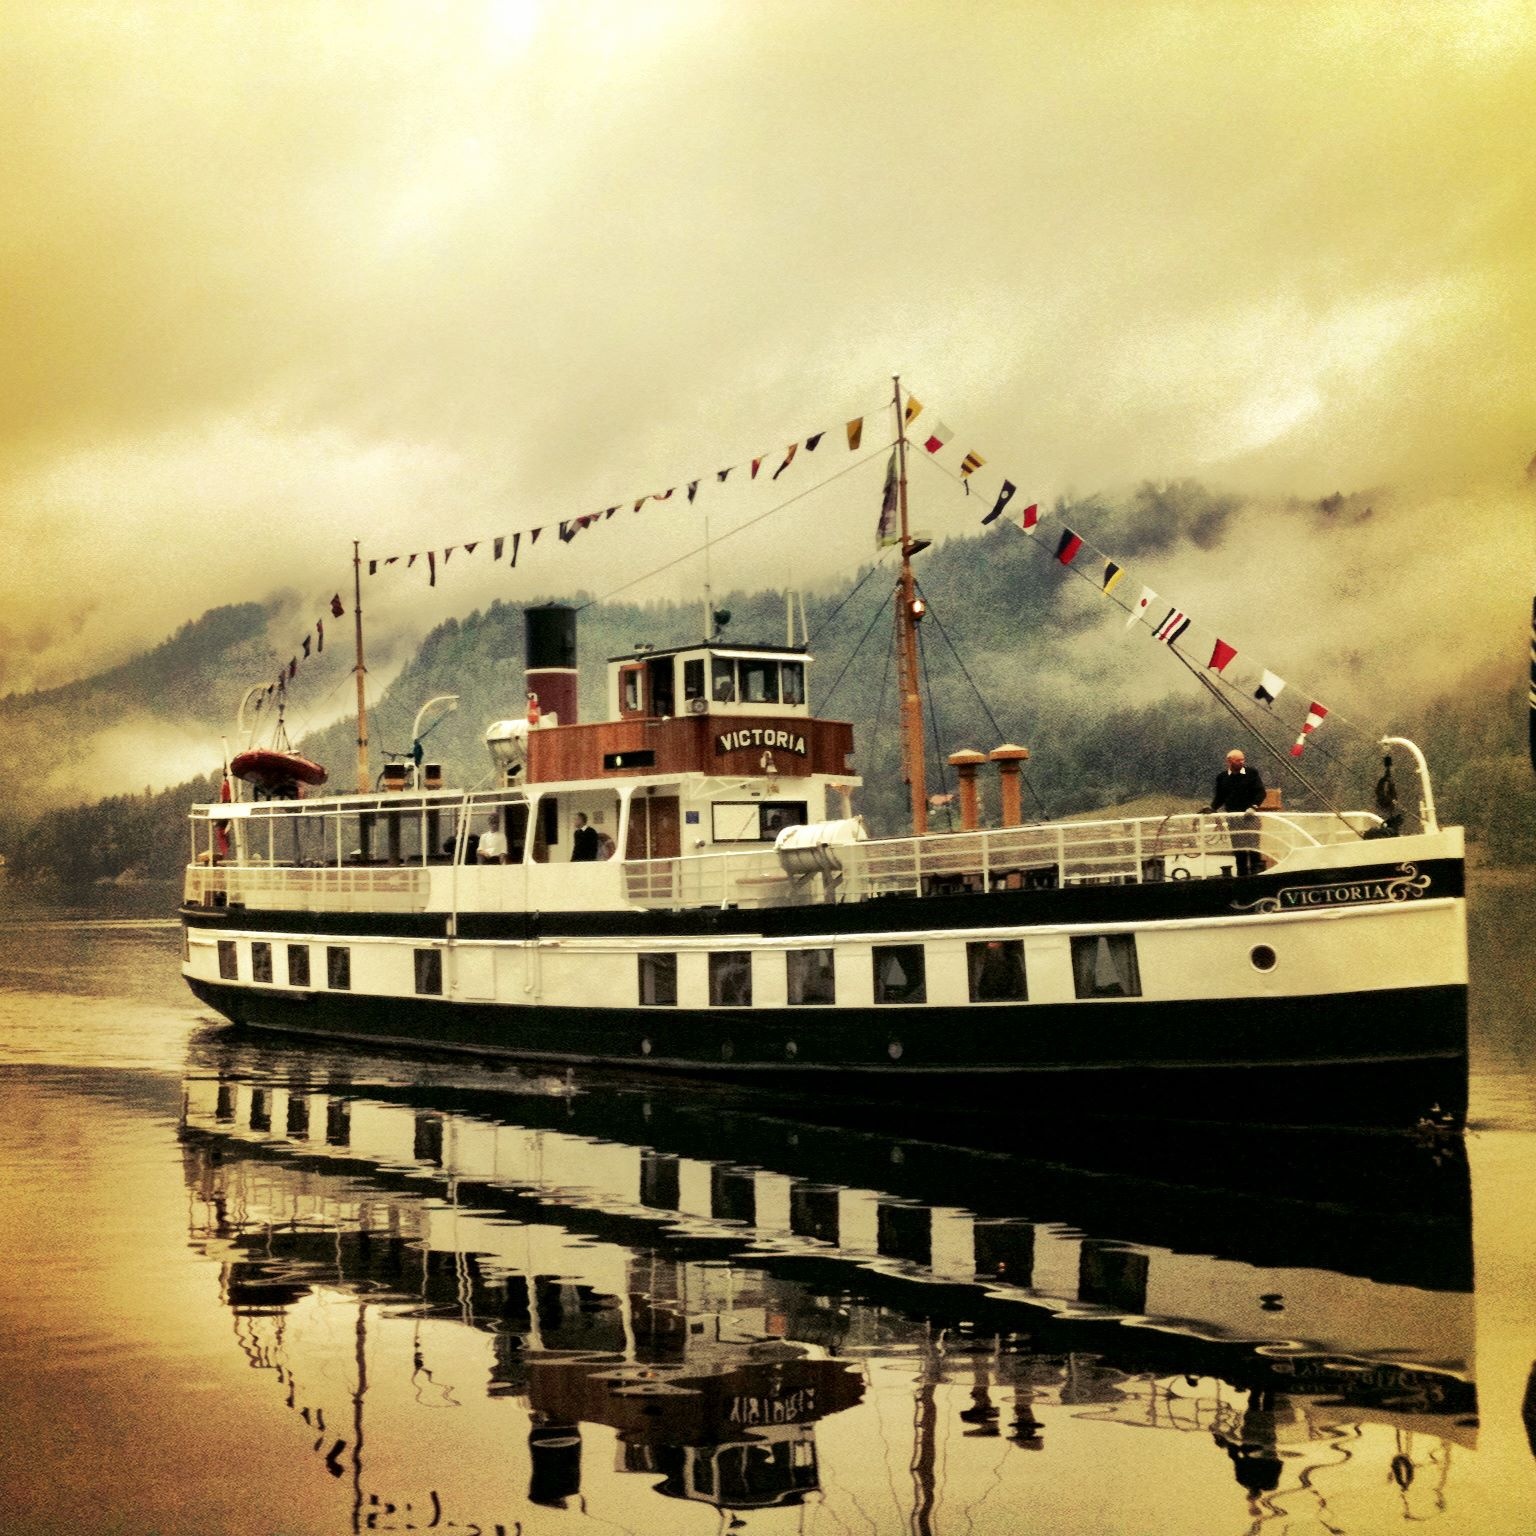 MS Victoria - Queen of the Telemark canal